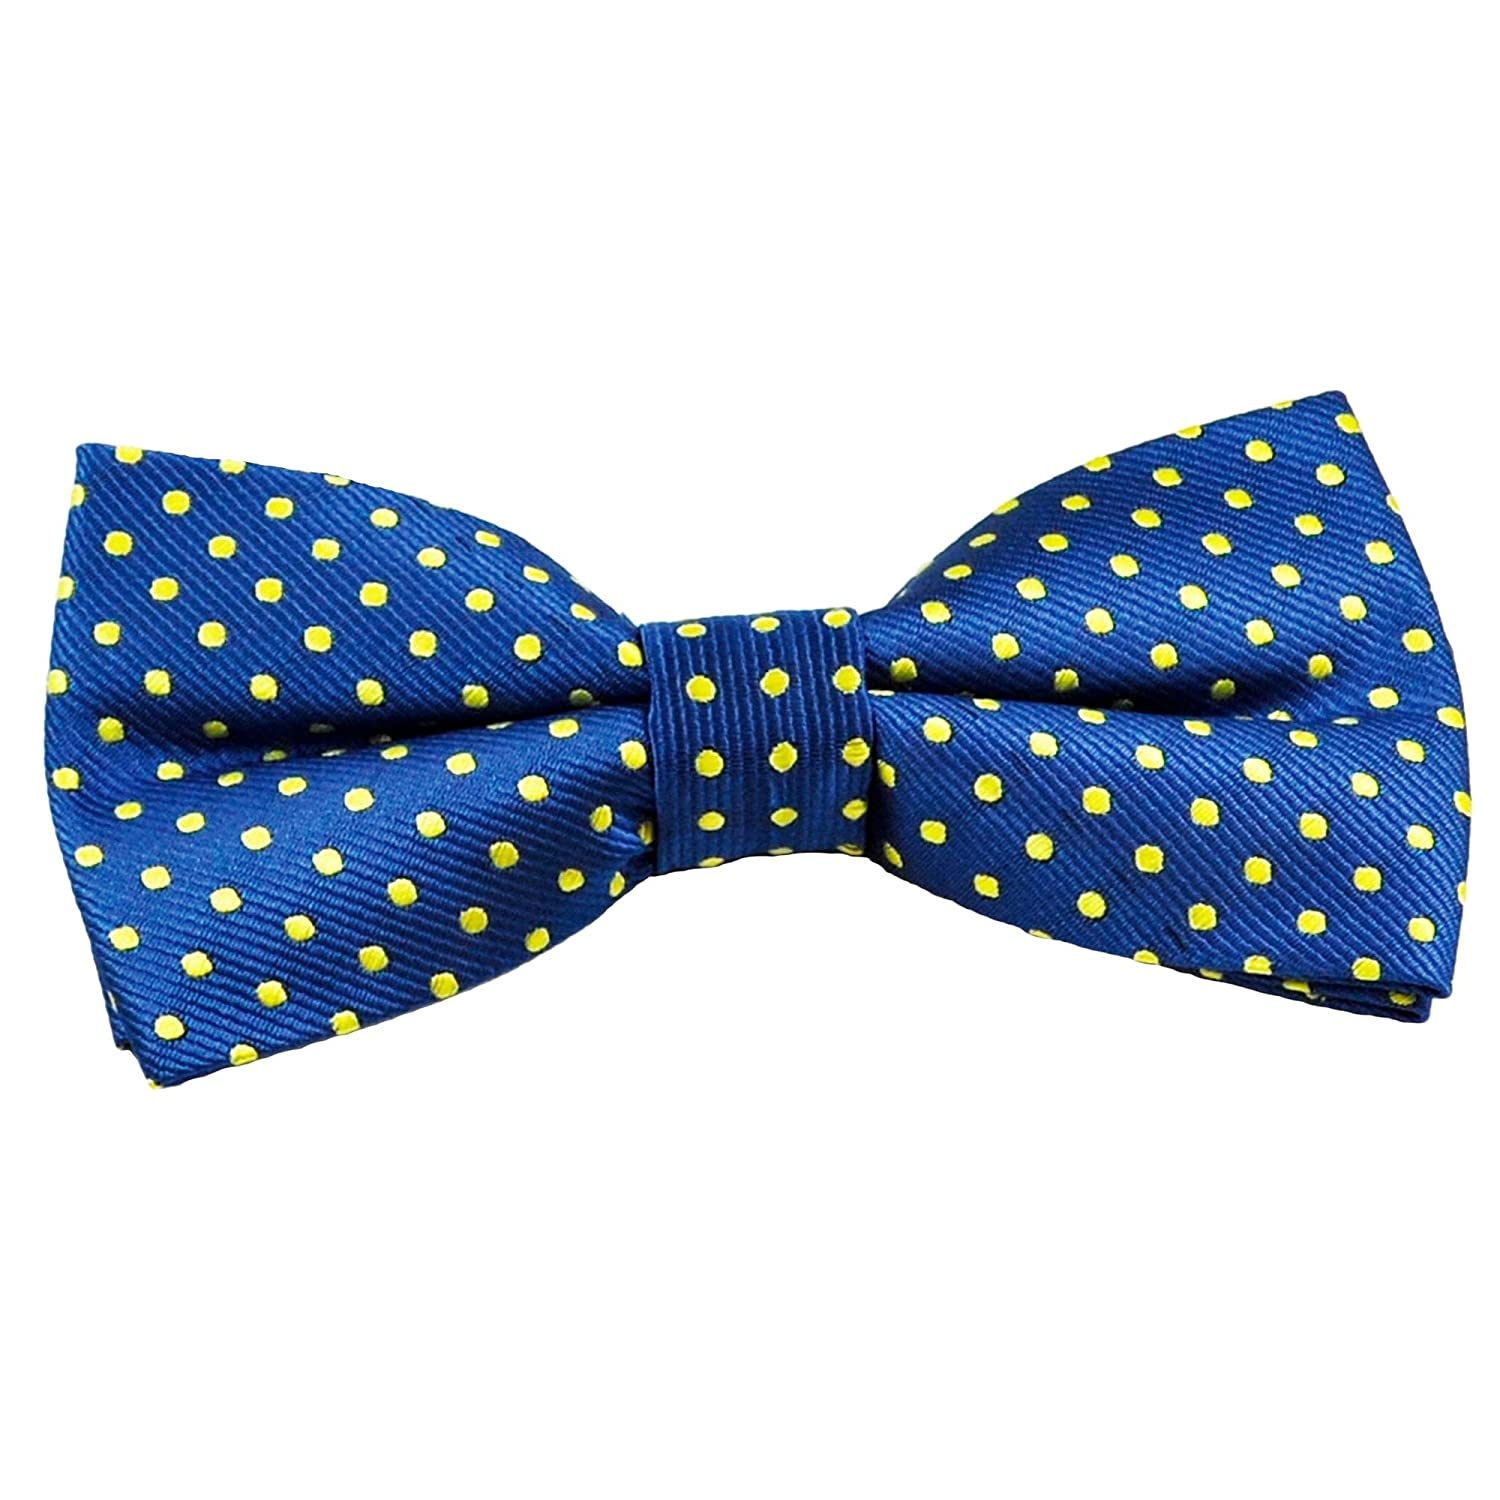 Royal Blue & Yellow Polka Dot Boys Bow Tie Ties Planet